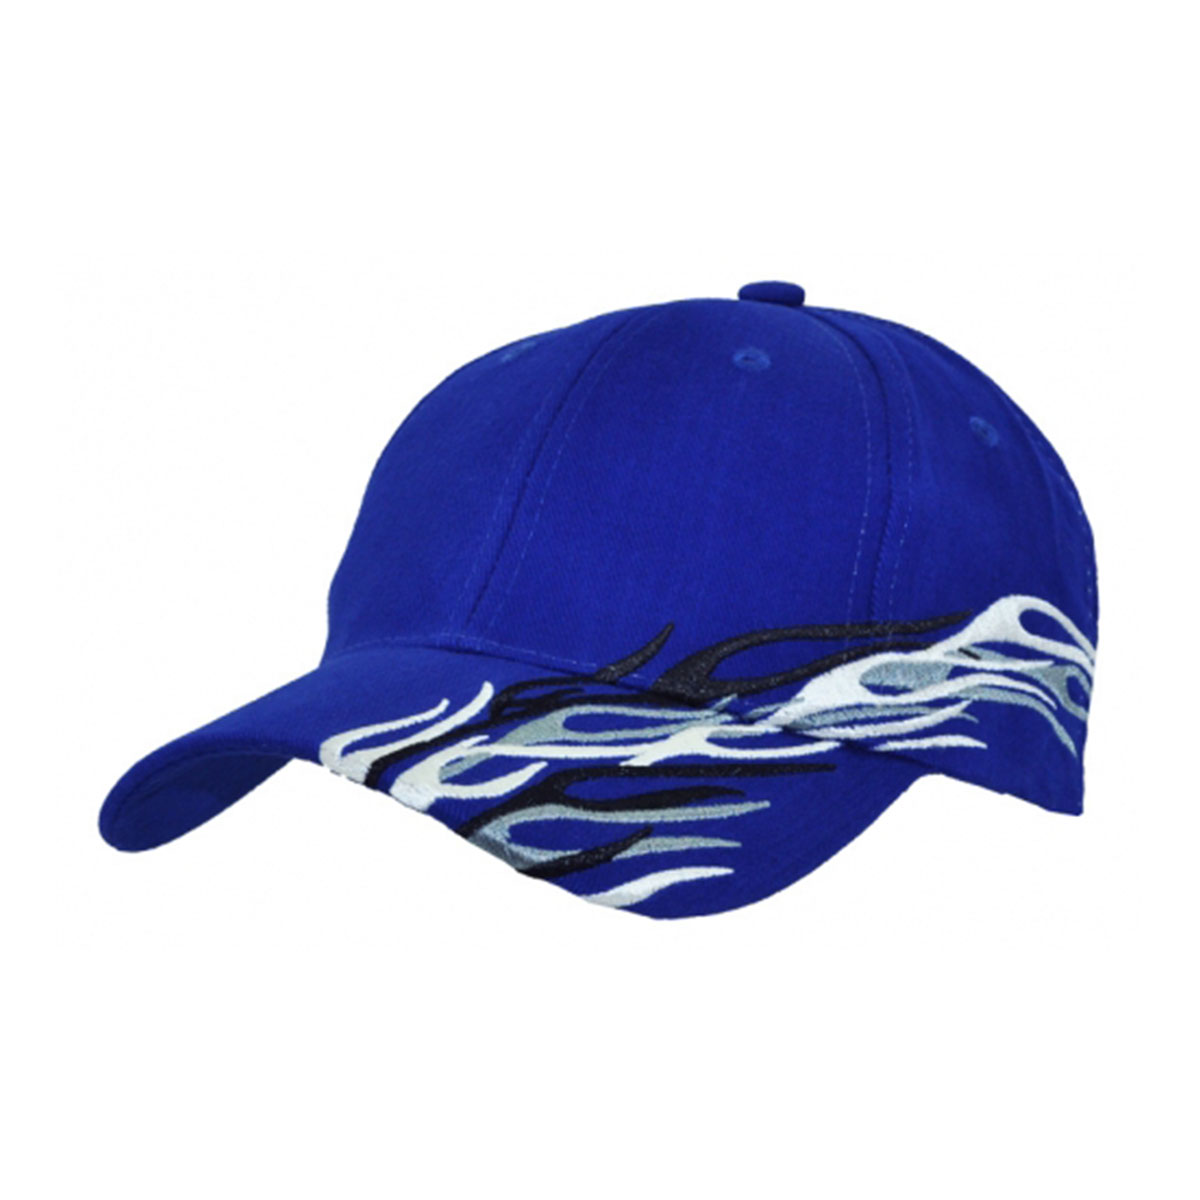 Cyclone Cap-Royal / White / Grey / Black